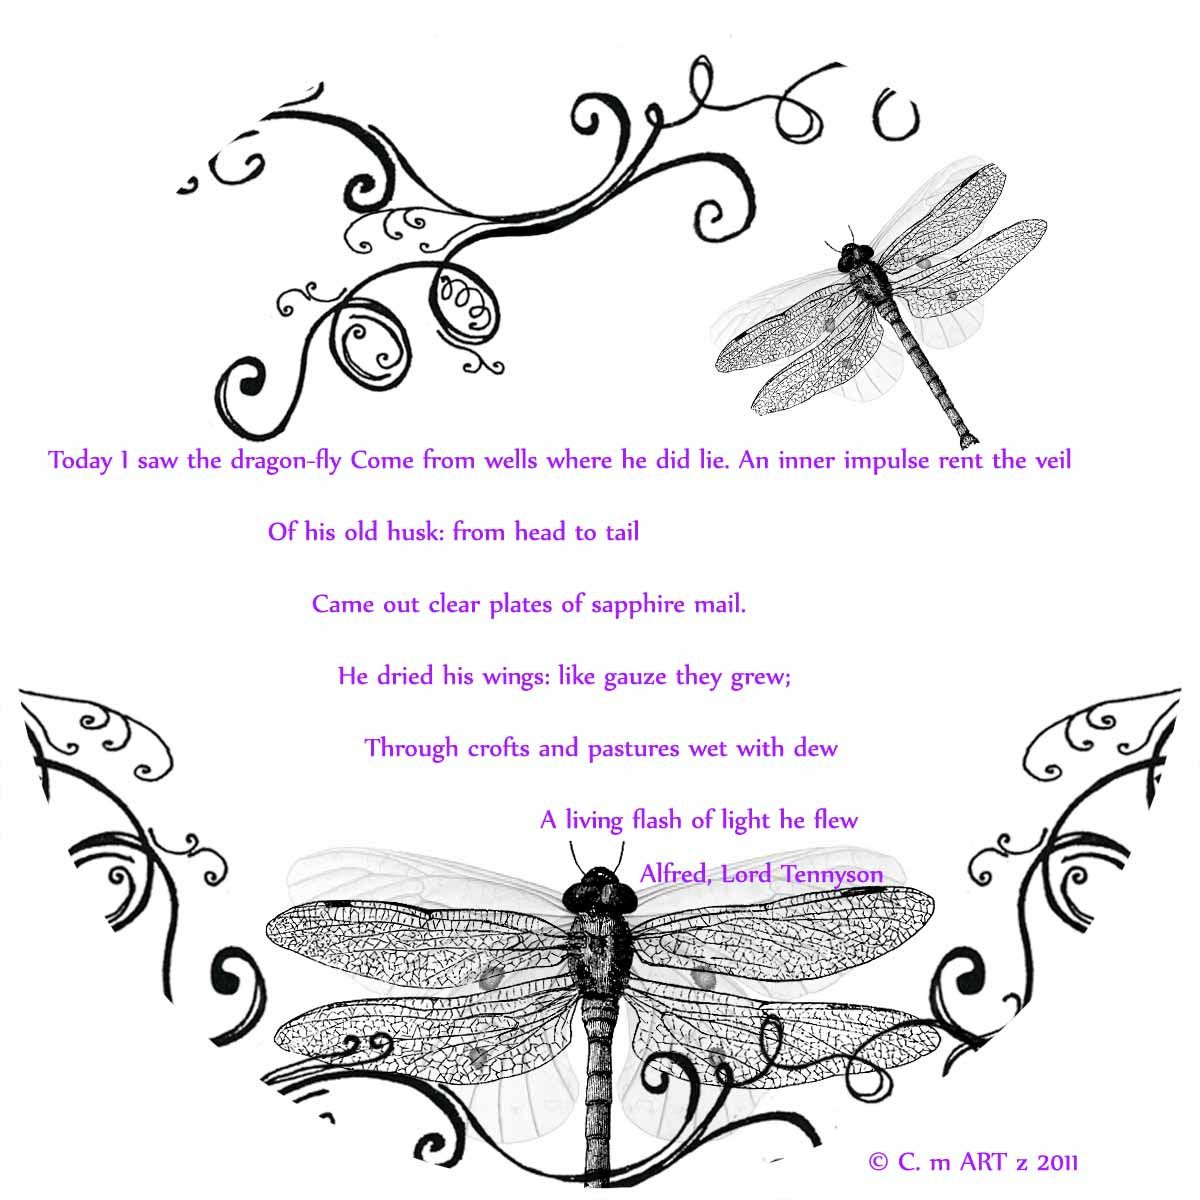 A Dragonfly design by me w/ quote by Alfred Lord Tennyson